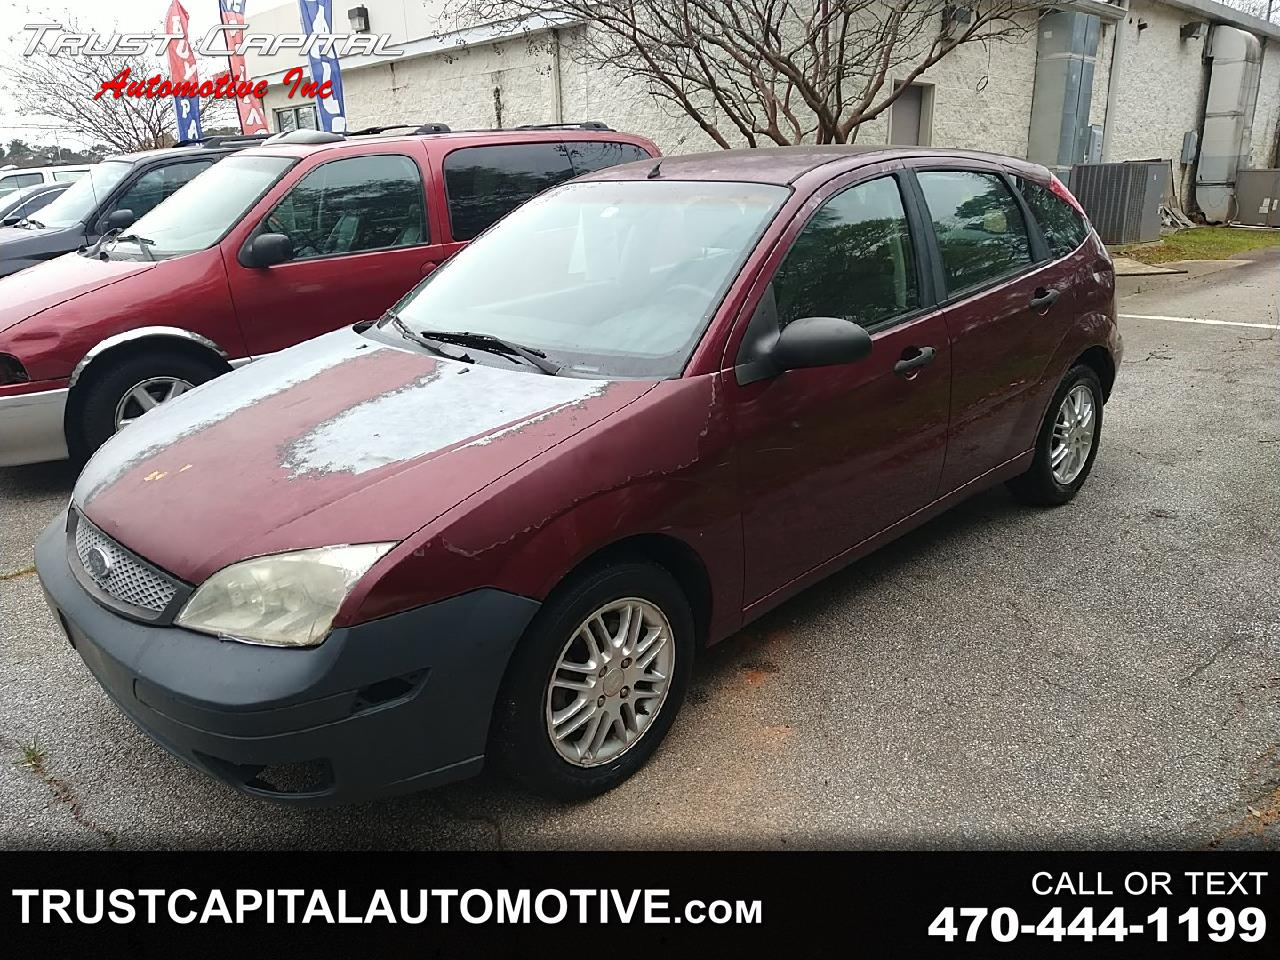 Ford Focus 5dr HB ZX5 SES 2006